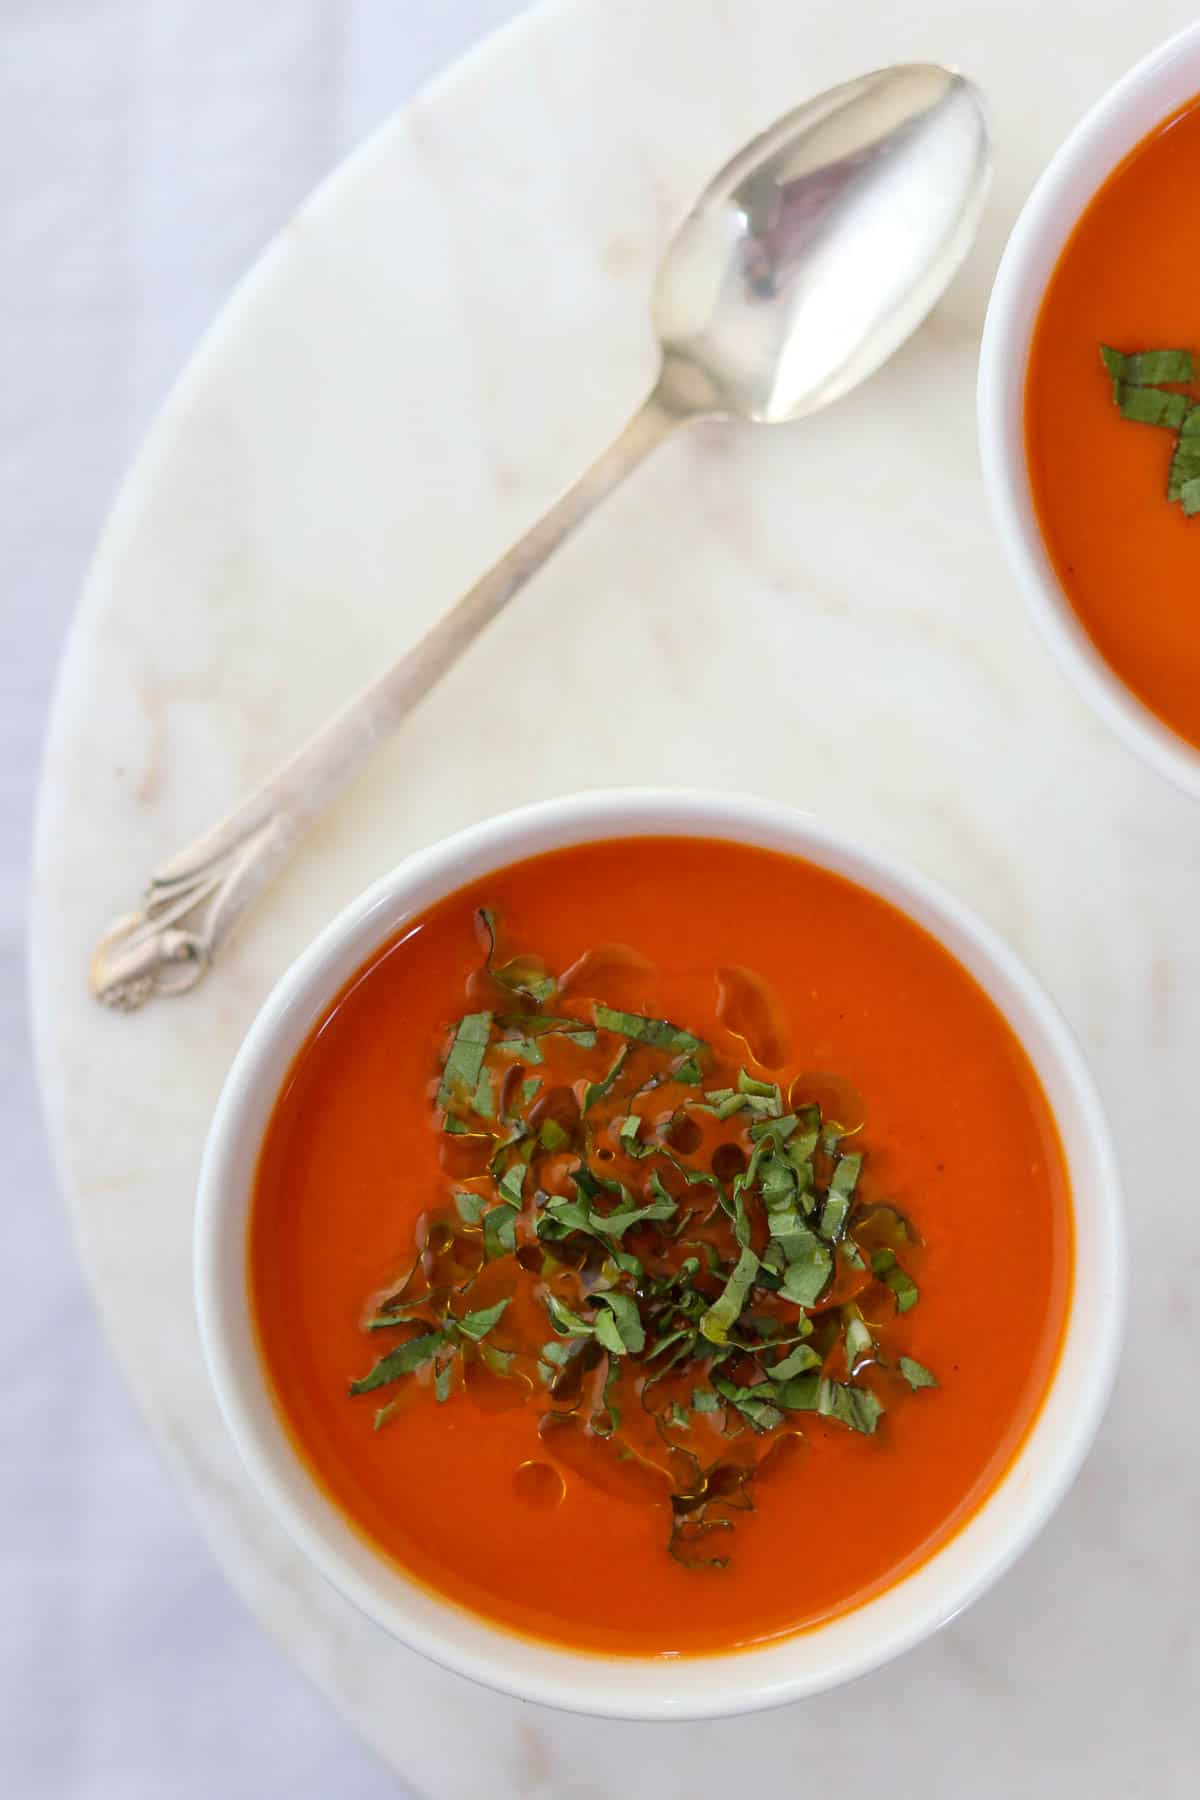 Two bowls of tomato red pepper soup topped with basil